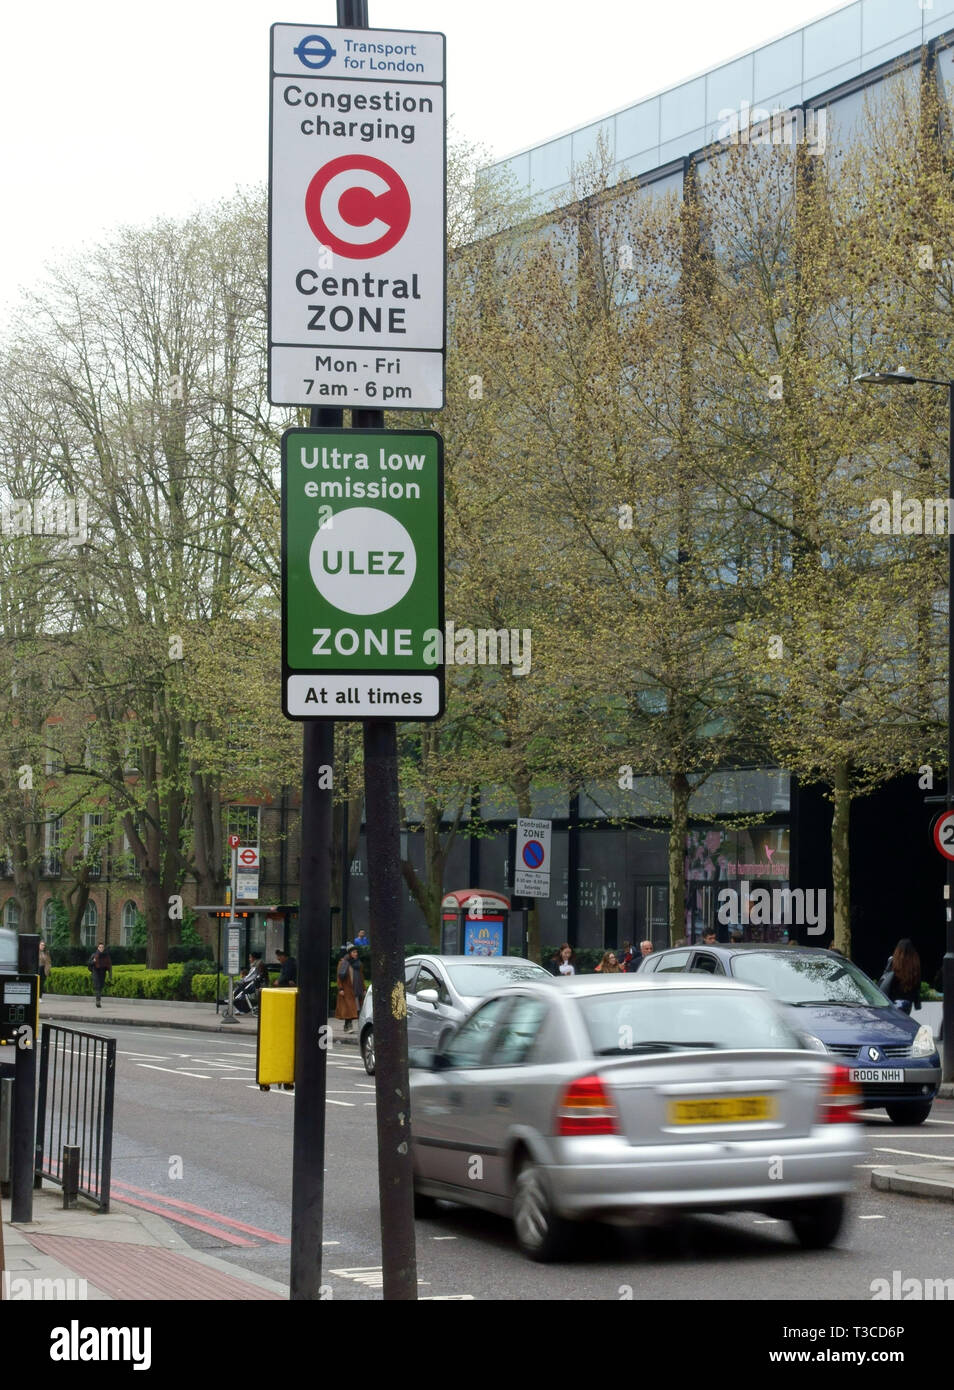 Ultra Low Emission Zone (ULEZ) came into force in the London congestion charge area on 8th April 2019 - Stock Image